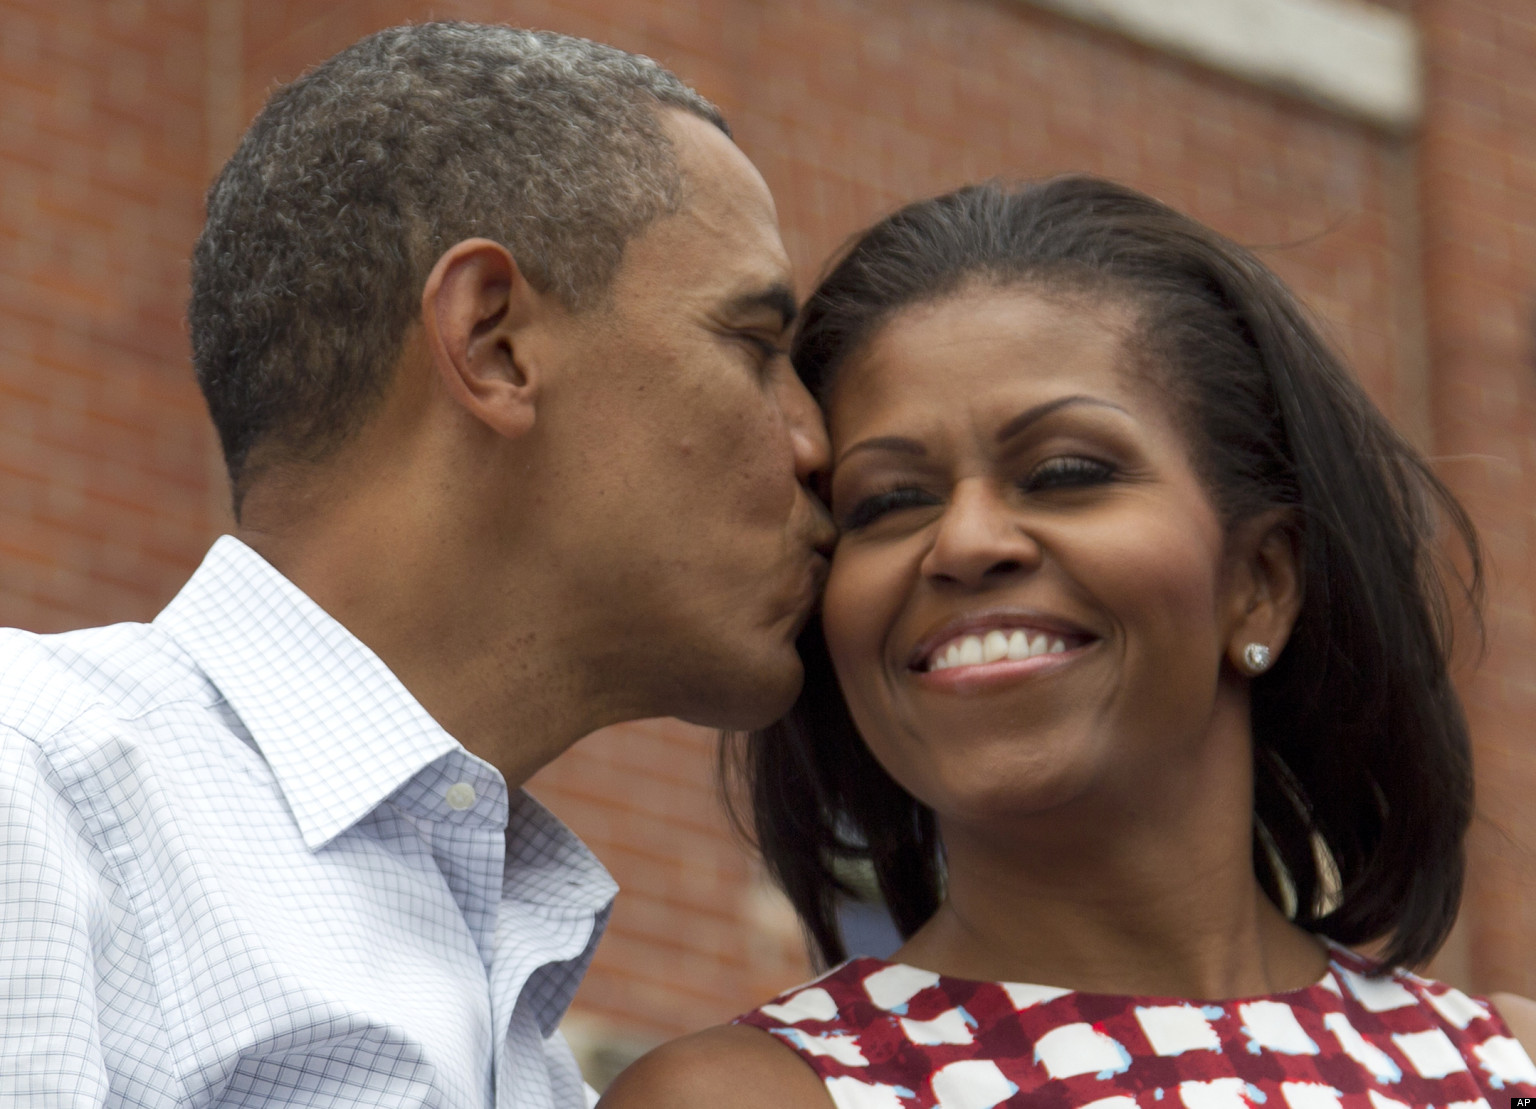 President Barack Obama kisses first lady Michelle Obama on stage at a campaign event at the Alliant Energy Amphitheater, Wednesday, Aug. 15, 2012, in Dubuque, Iowa,  during a three day campaign bus tour through Iowa.  (AP Photo/Carolyn Kaster)